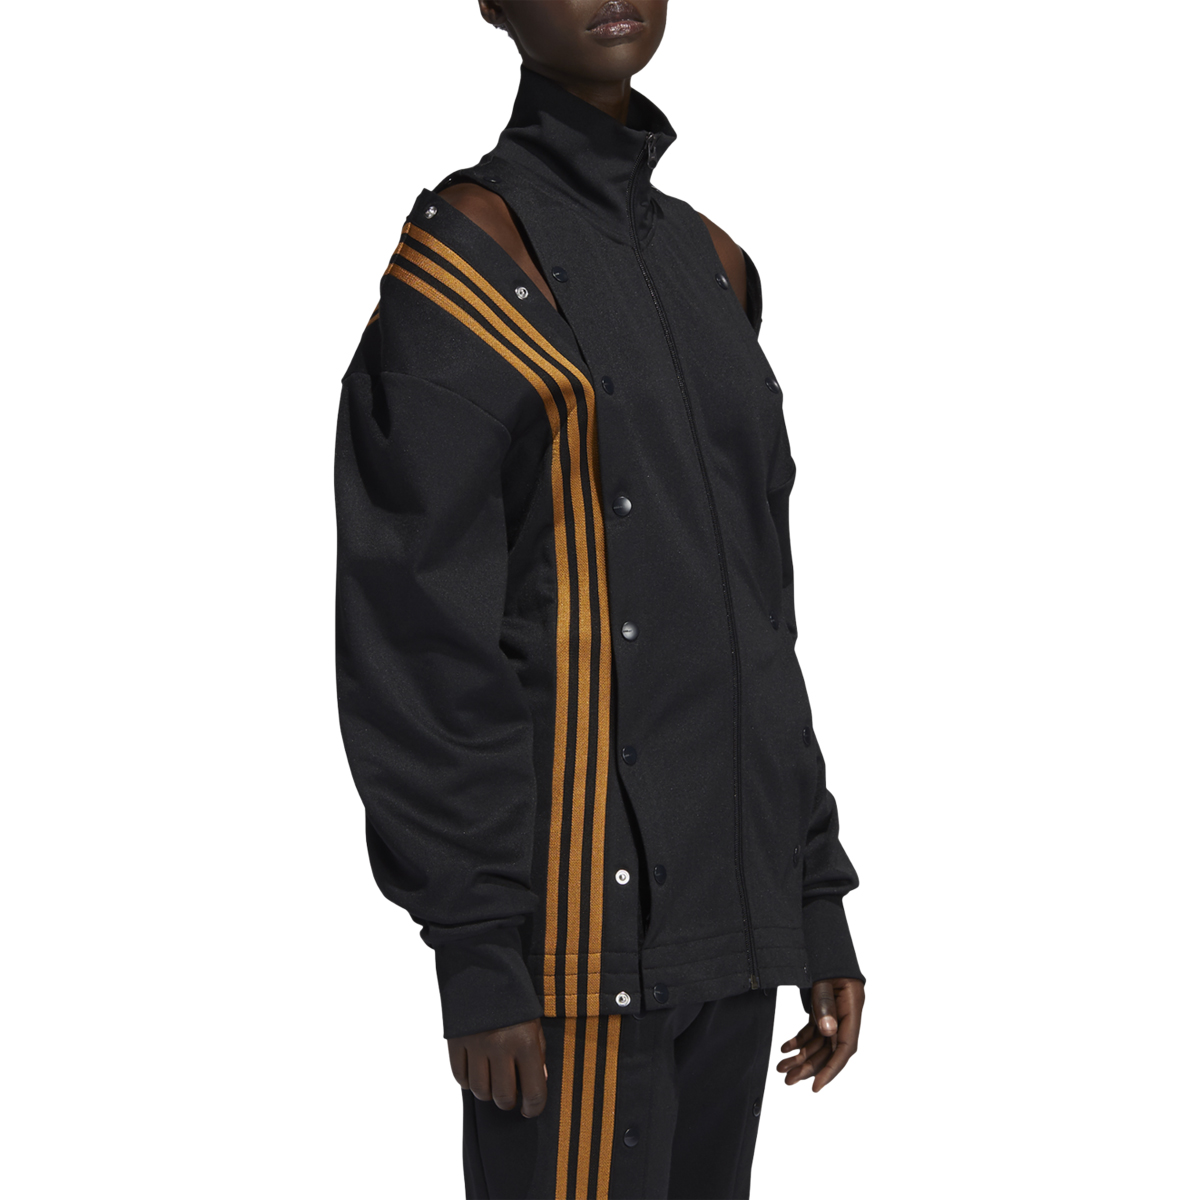 adidas IVY PARK 4ALL Track Jacket